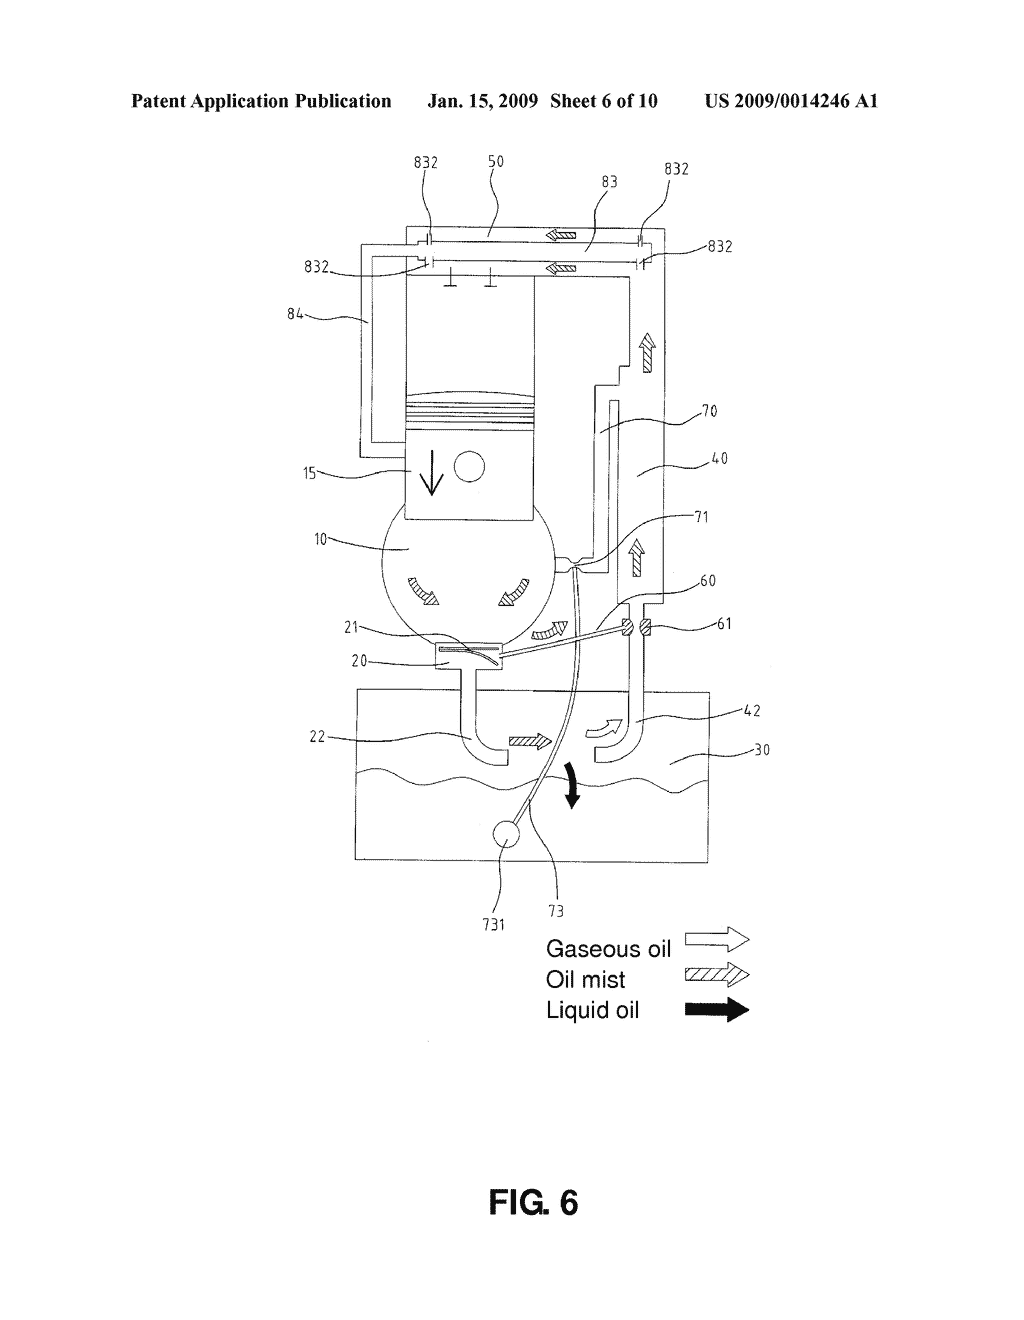 6 Lead Single Phase Motor Wiring Diagram With Capacitor